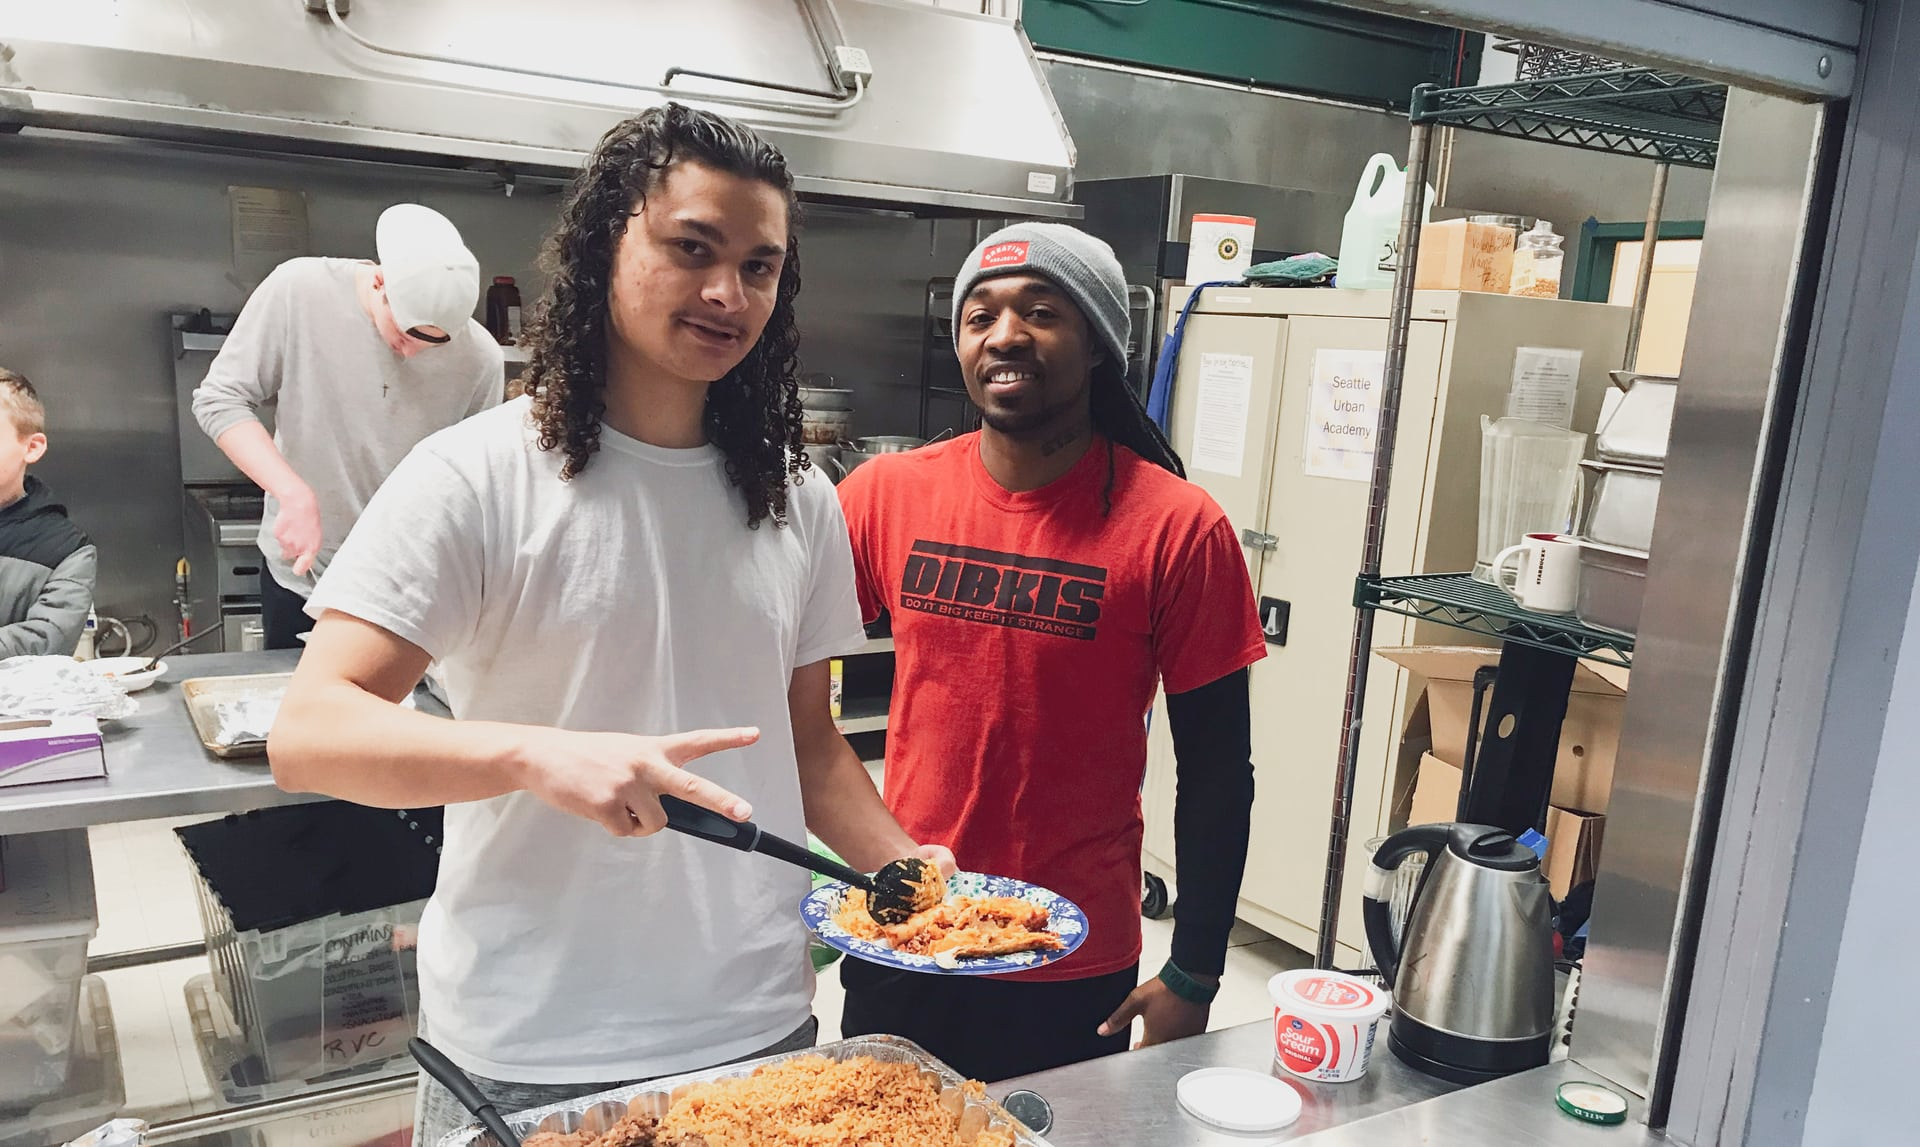 A photo of a student with a meal in South Seattle and Mike Davis